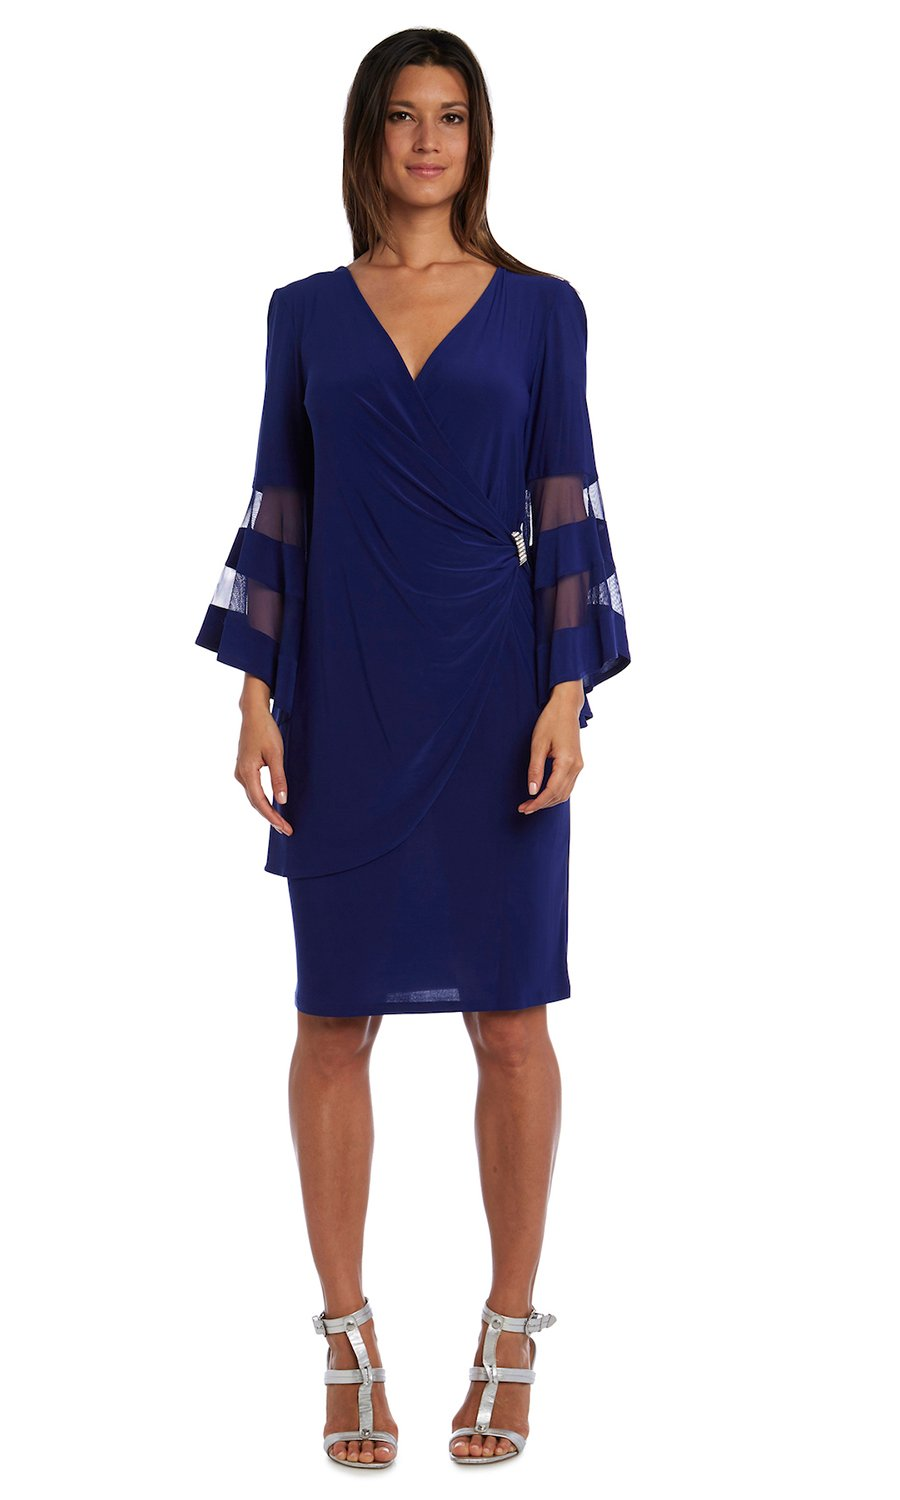 Illusion Bell Sleeve Dress with Rush Detail at Waist - Misses -Electric Blue - Front